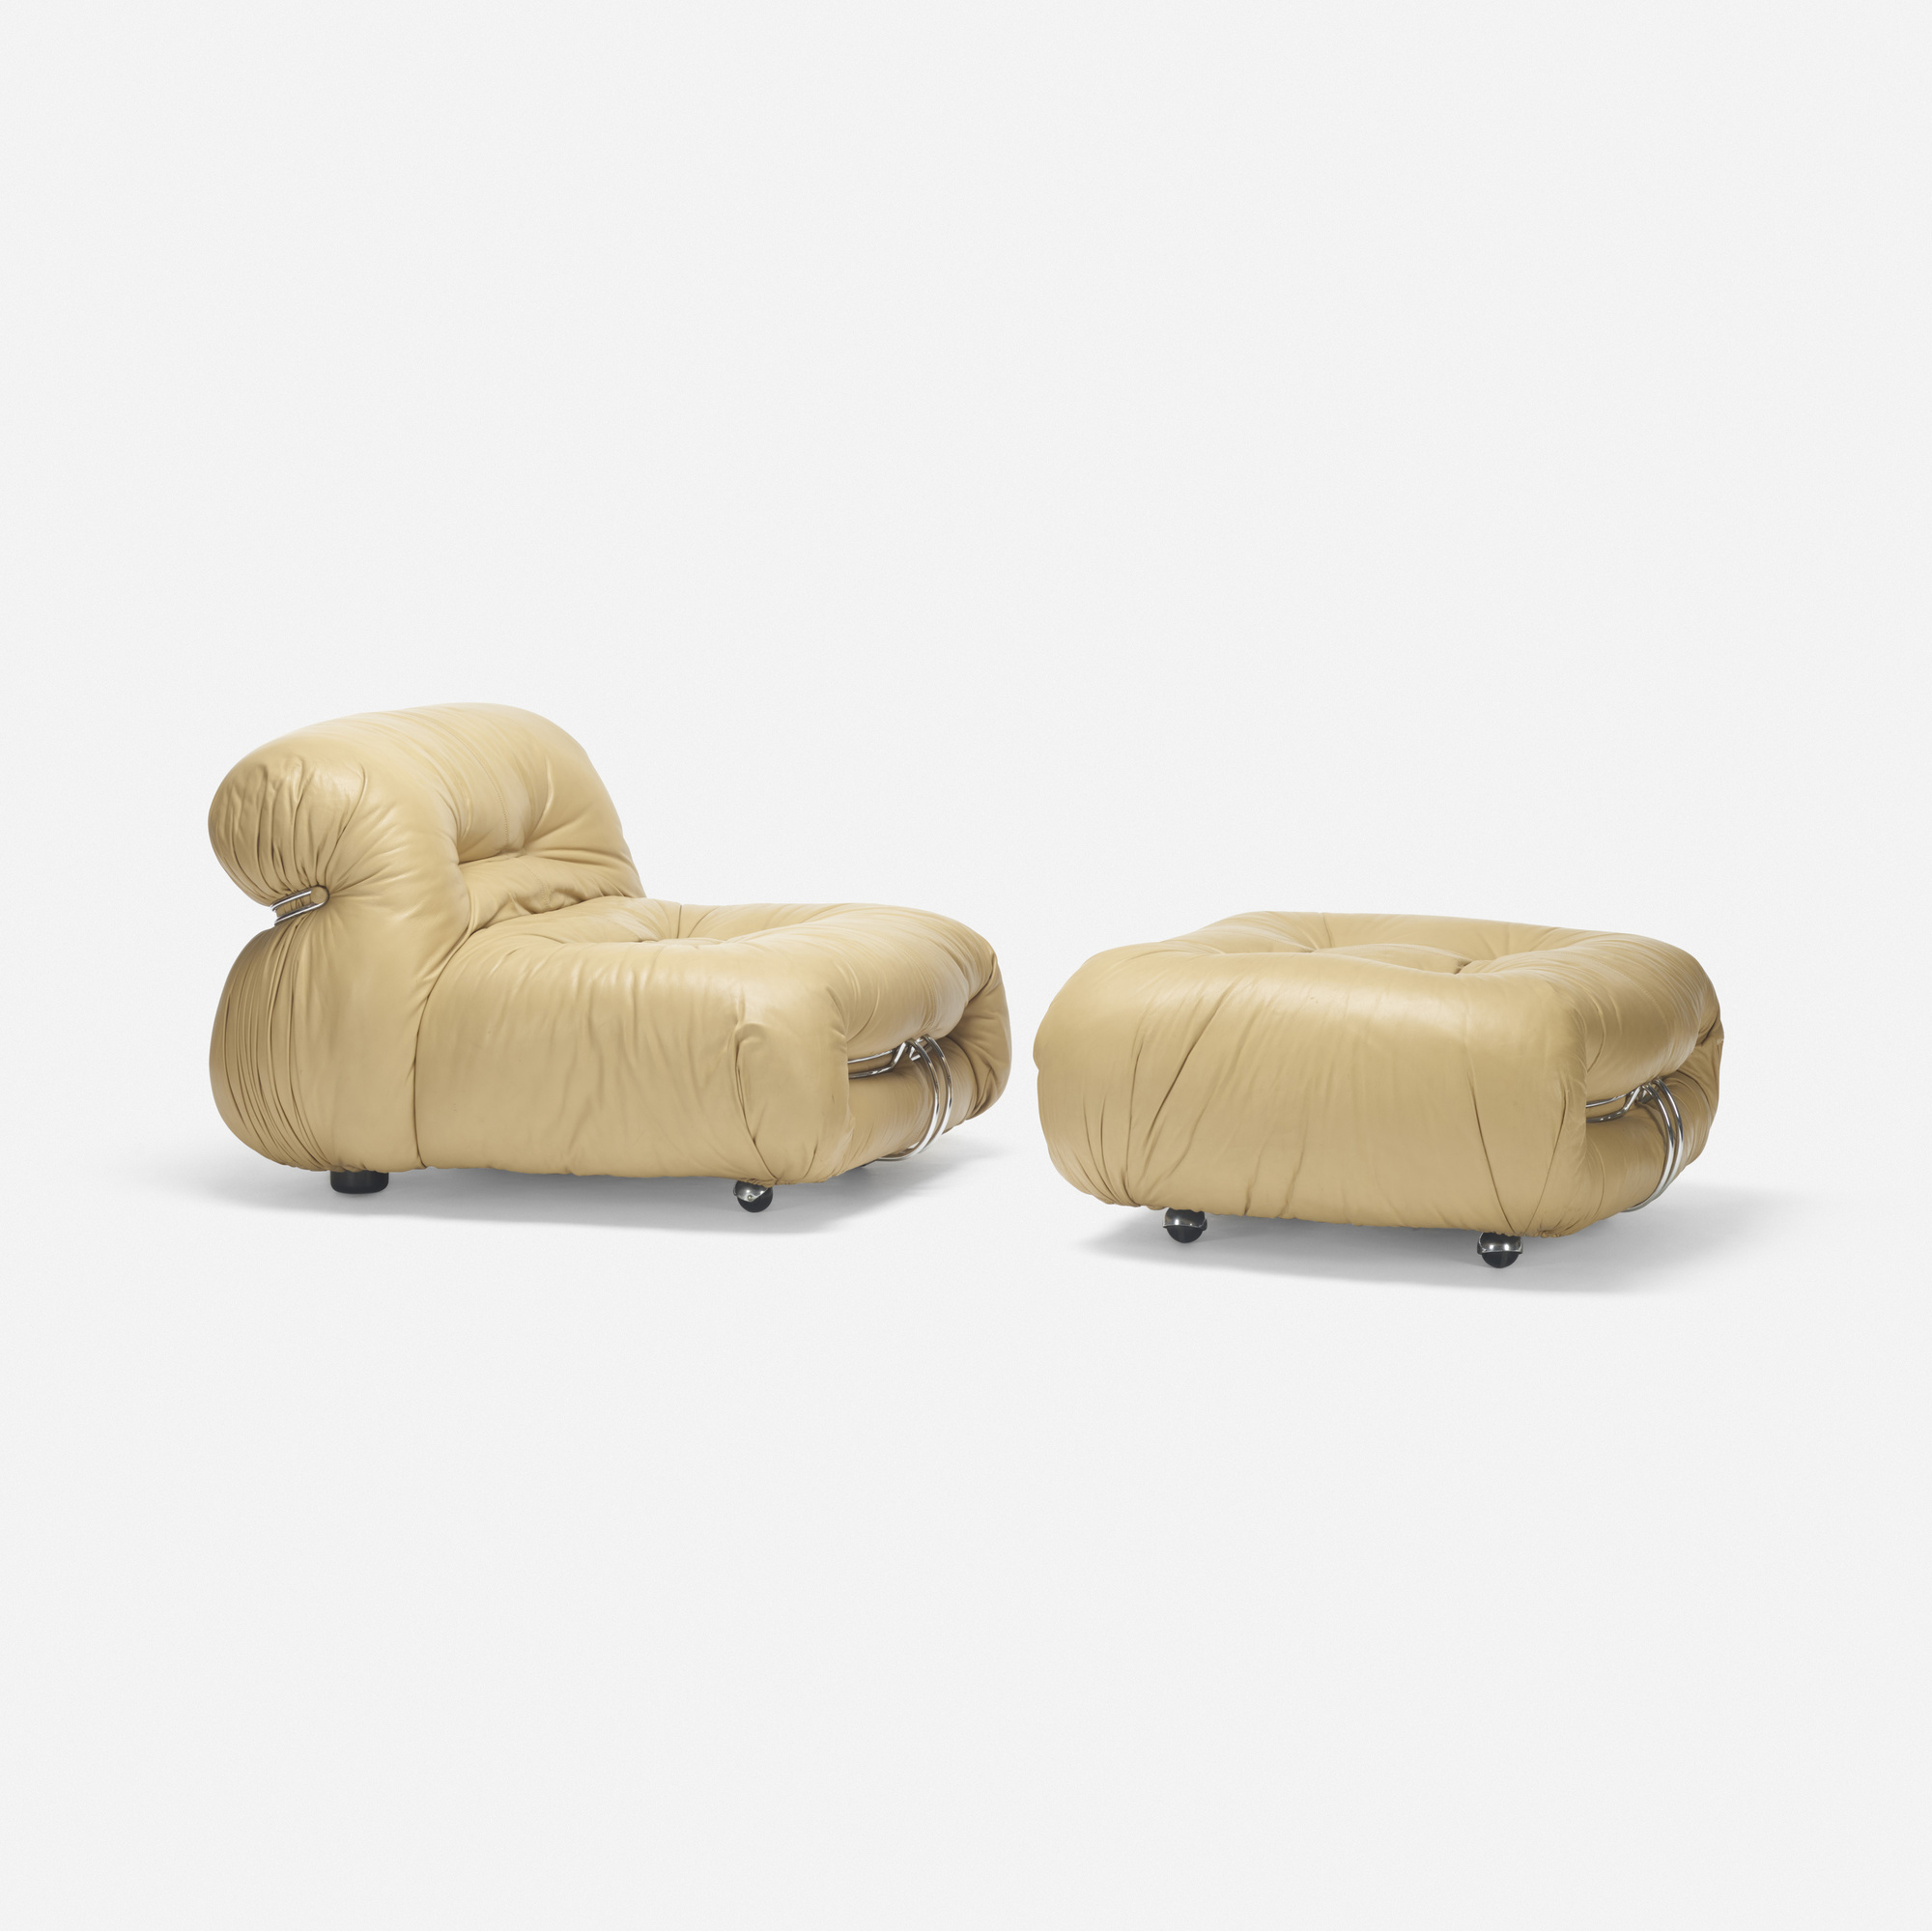 313: Afra and Tobia Scarpa / Soriana lounge chair and ottoman (1 of 2)